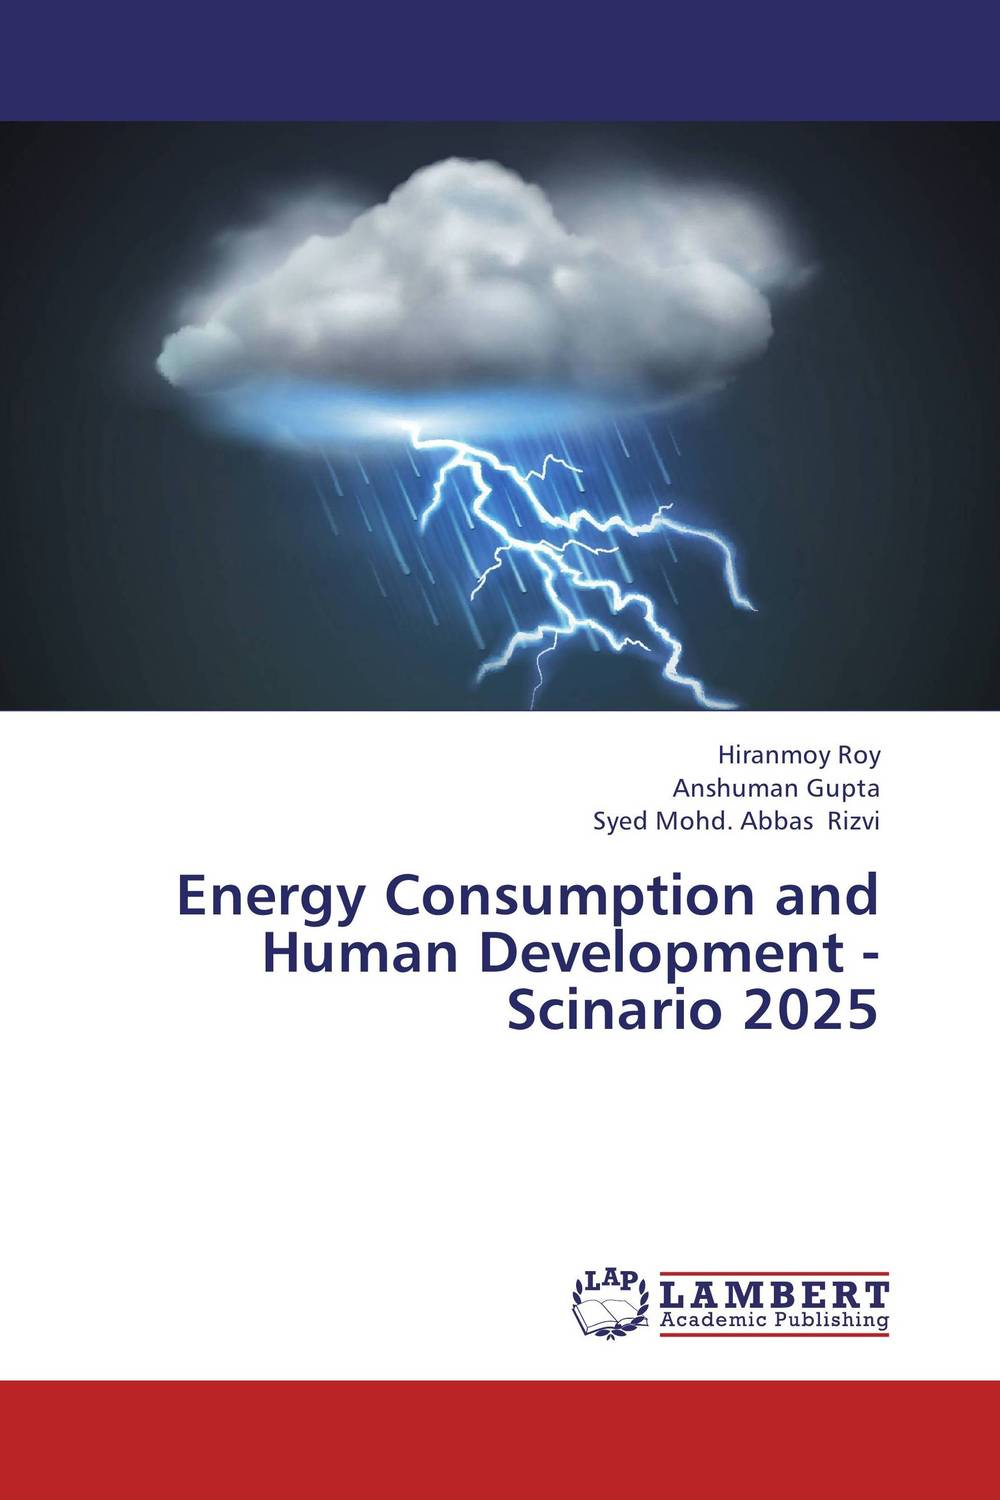 Energy Consumption and Human Development - Scinario 2025 p b eregha energy consumption oil price and macroeconomic performance in energy dependent african countries